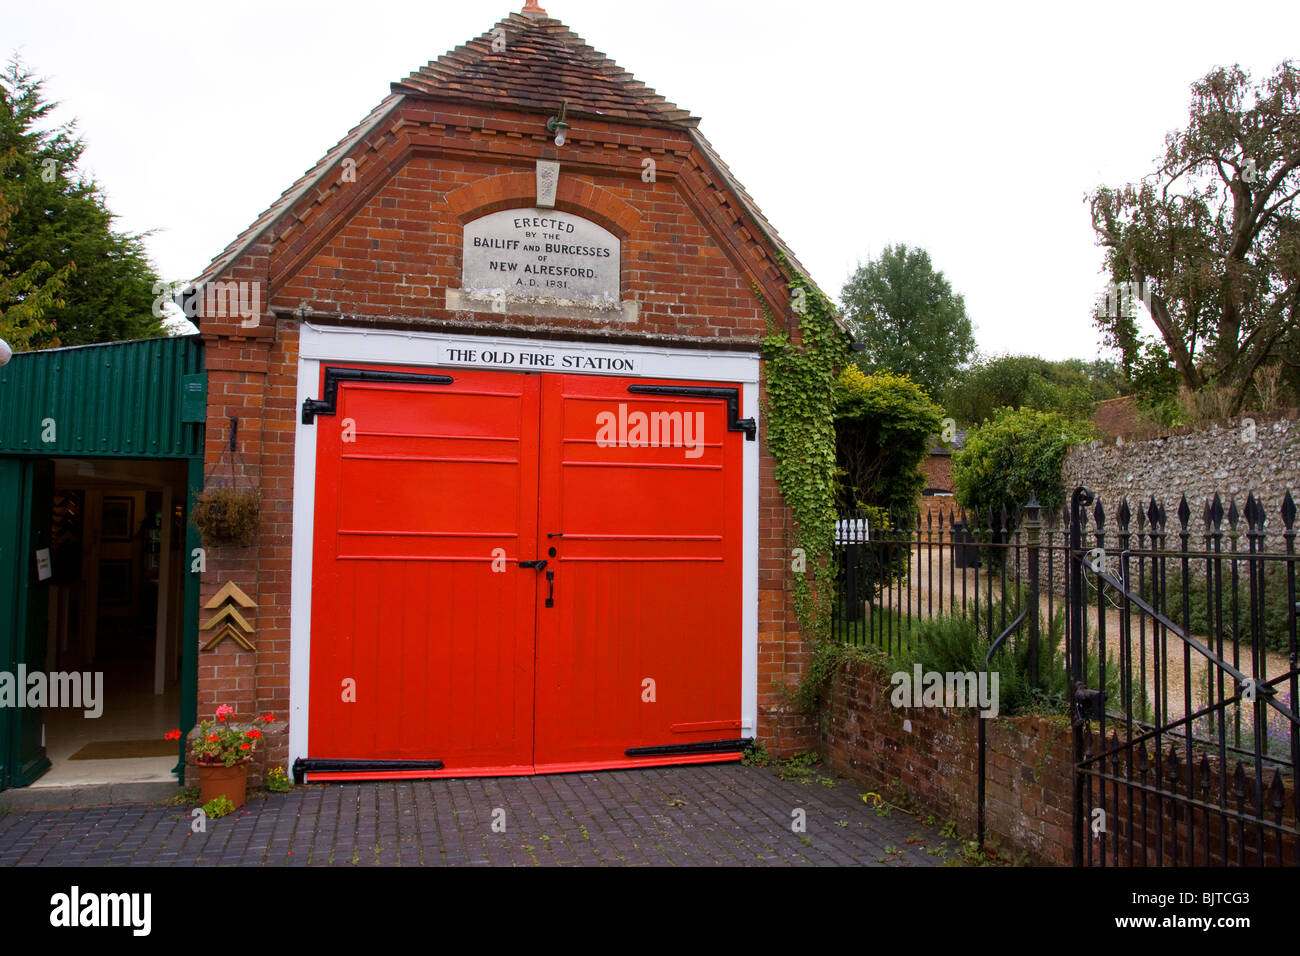 Old Fire Station New Alresford Hampshire - Stock Image